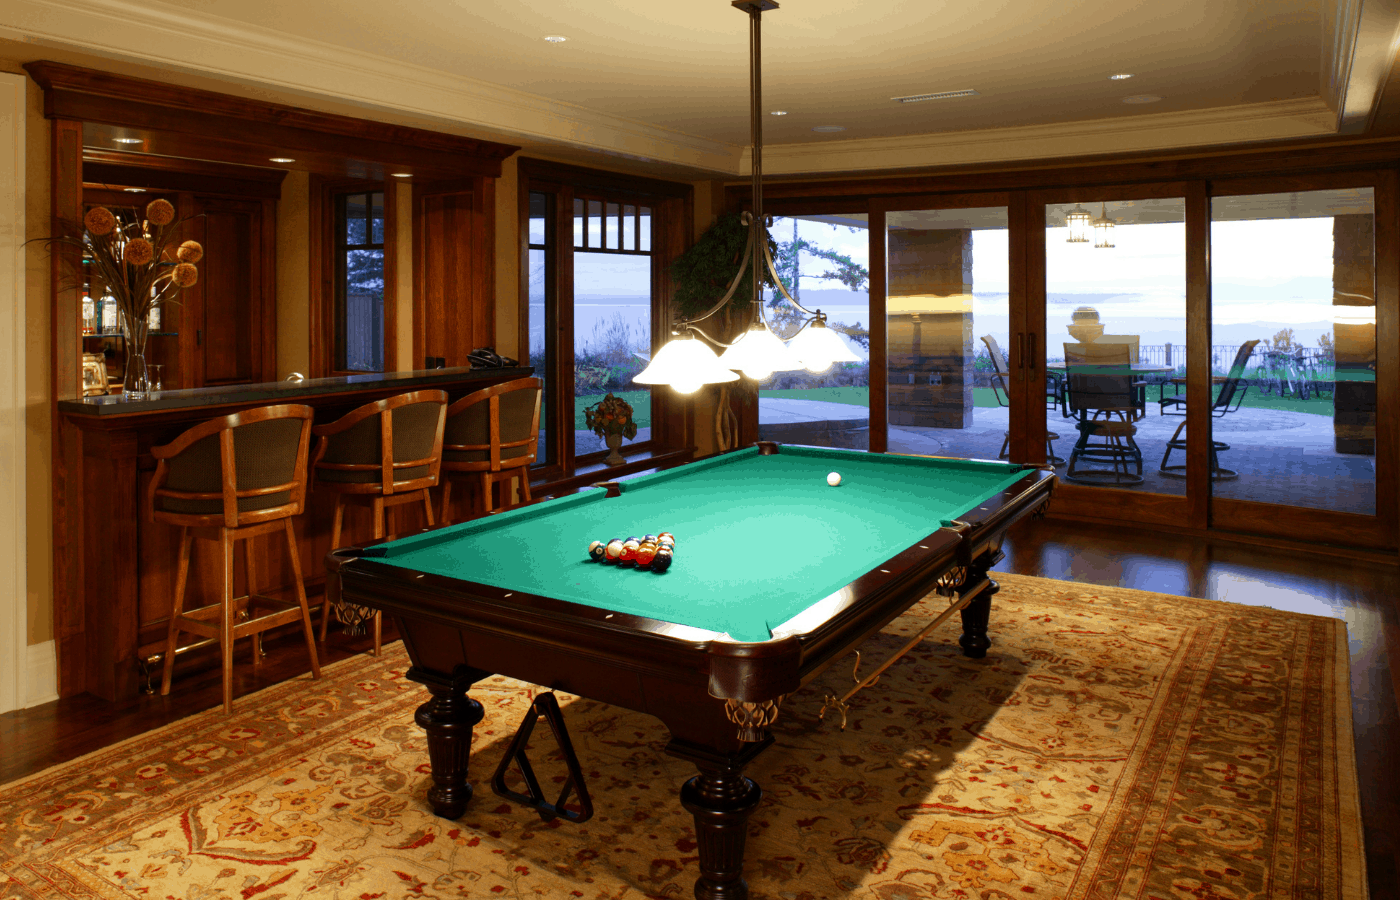 is a pool table considered furniture